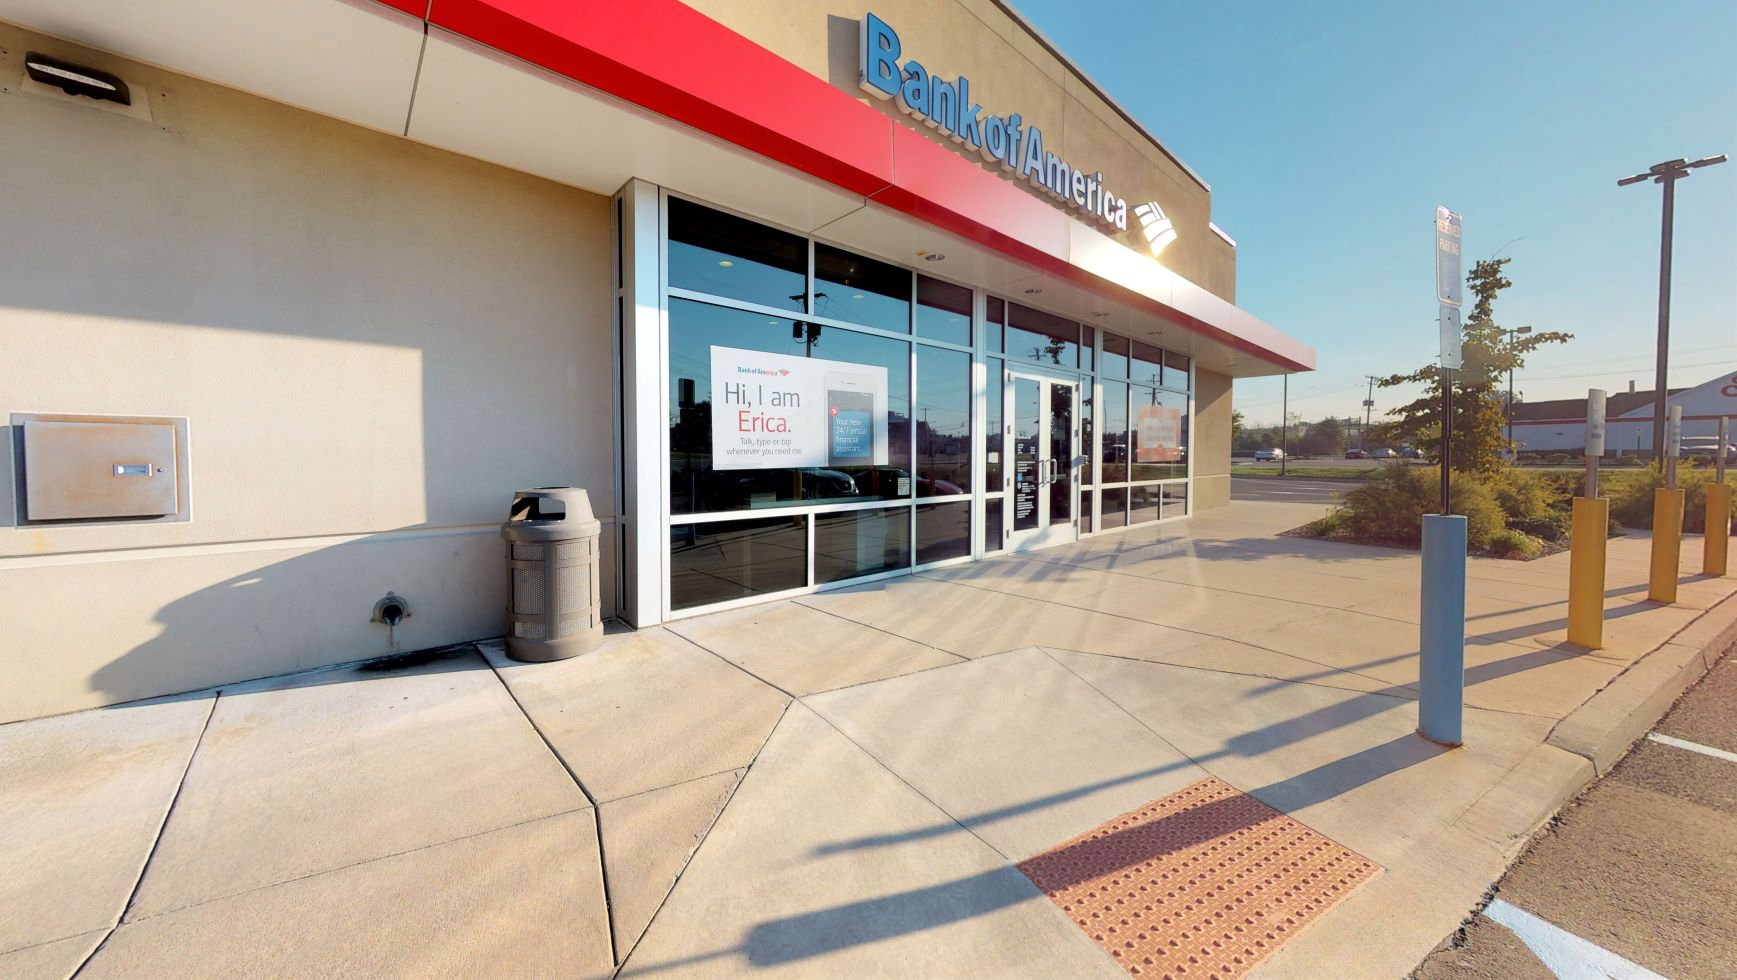 Bank of America financial center with drive-thru ATM | 351 W Route 70, Marlton, NJ 08053